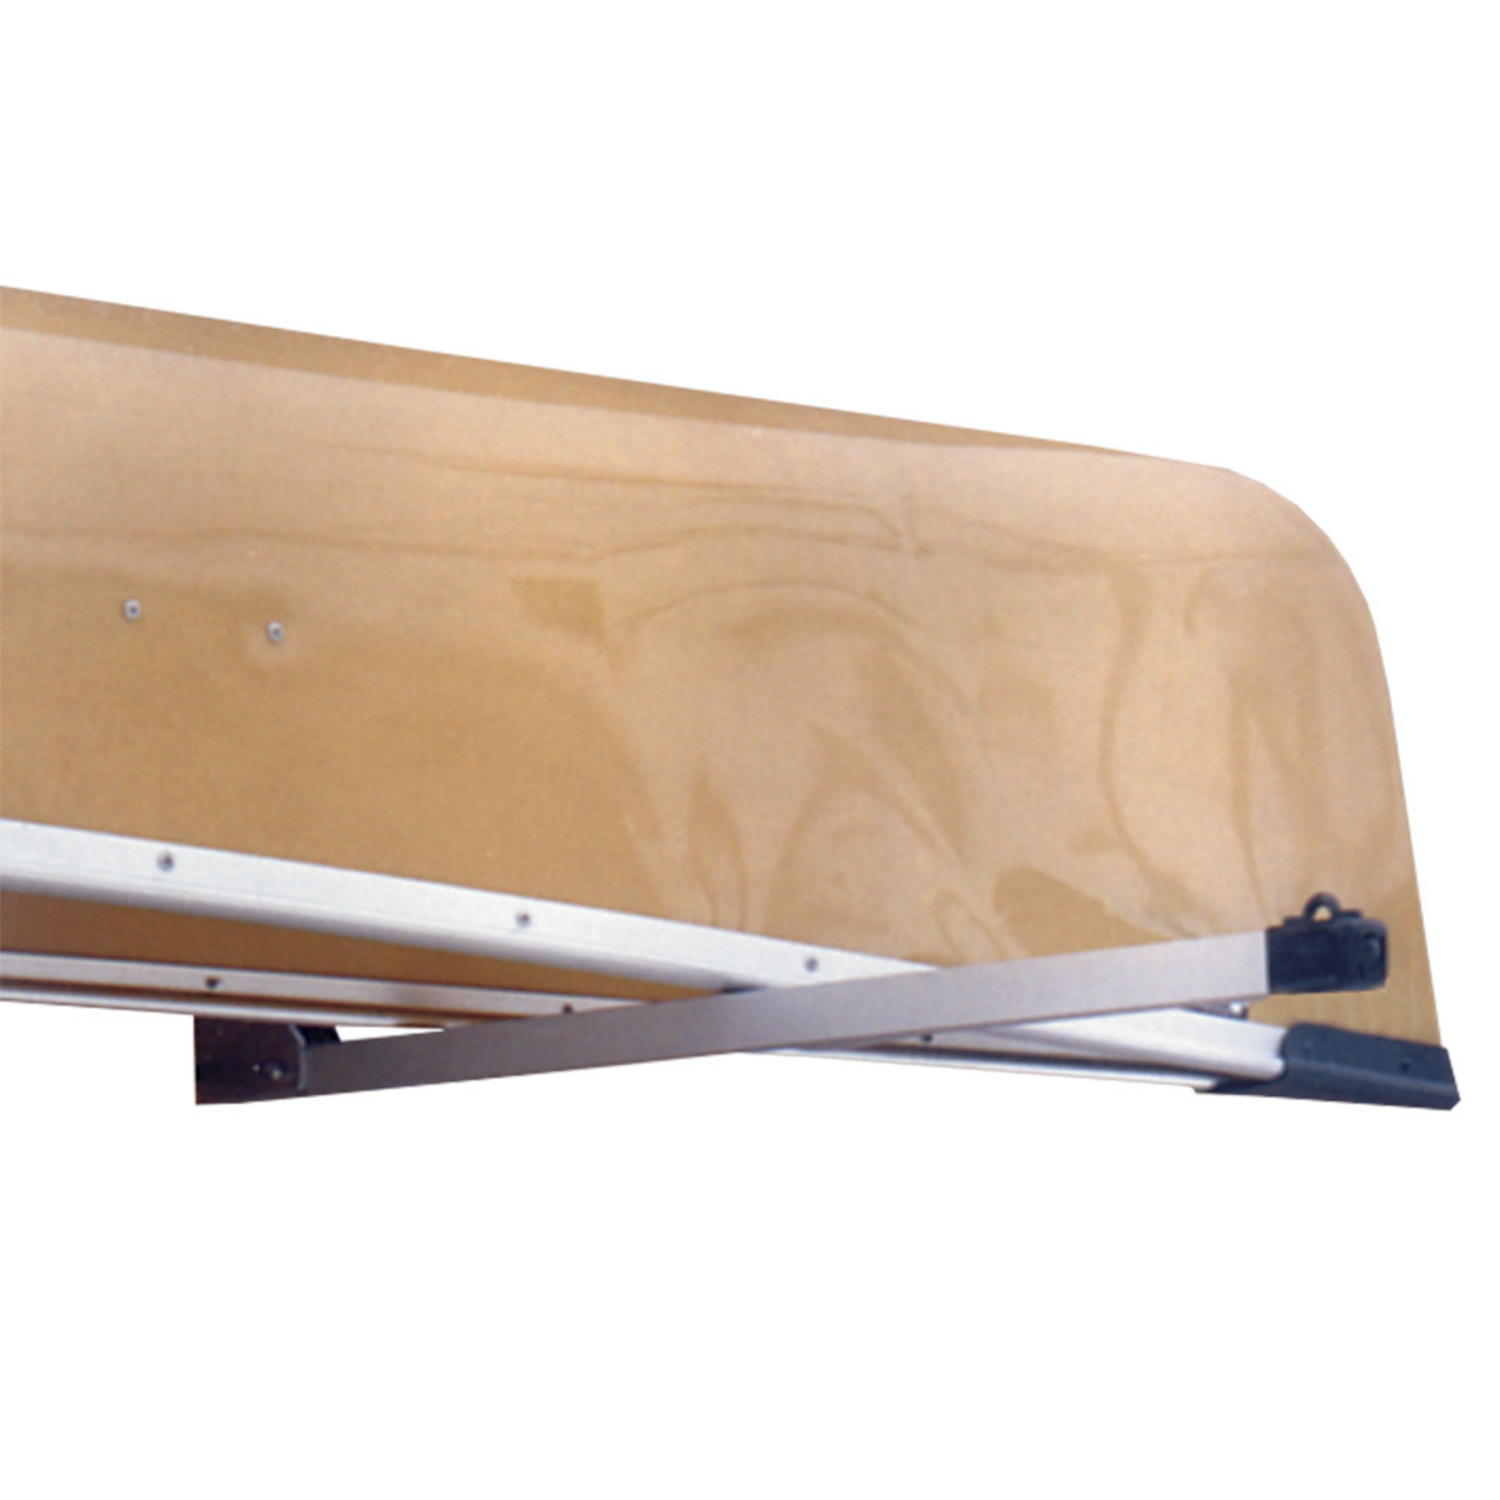 Kayak Wall Mount >> Canoe Storage Rack, Wall Storage For Canoe | Boundary Waters Catalog